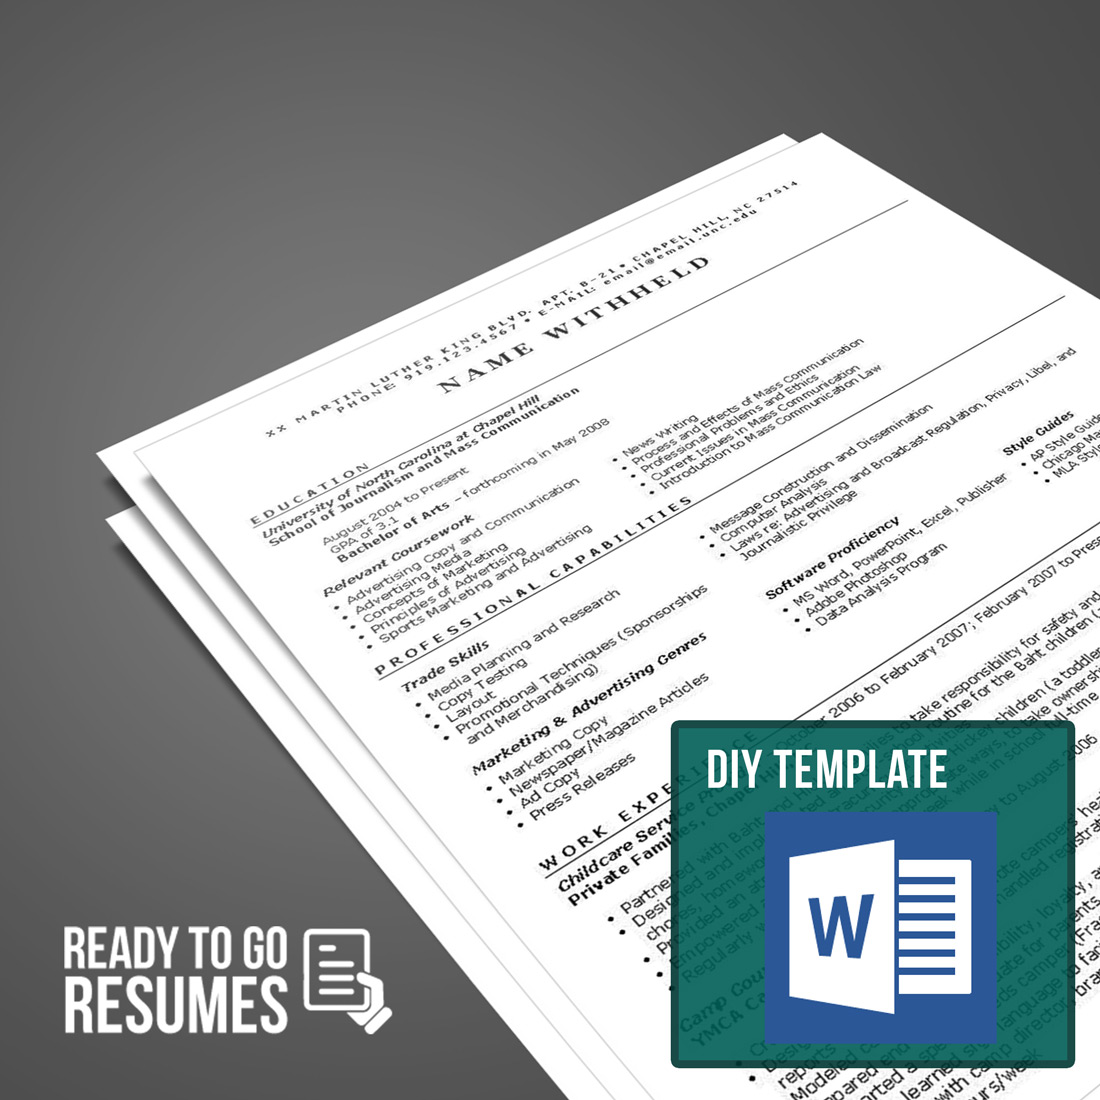 Federal Resume DIY Template Ready To